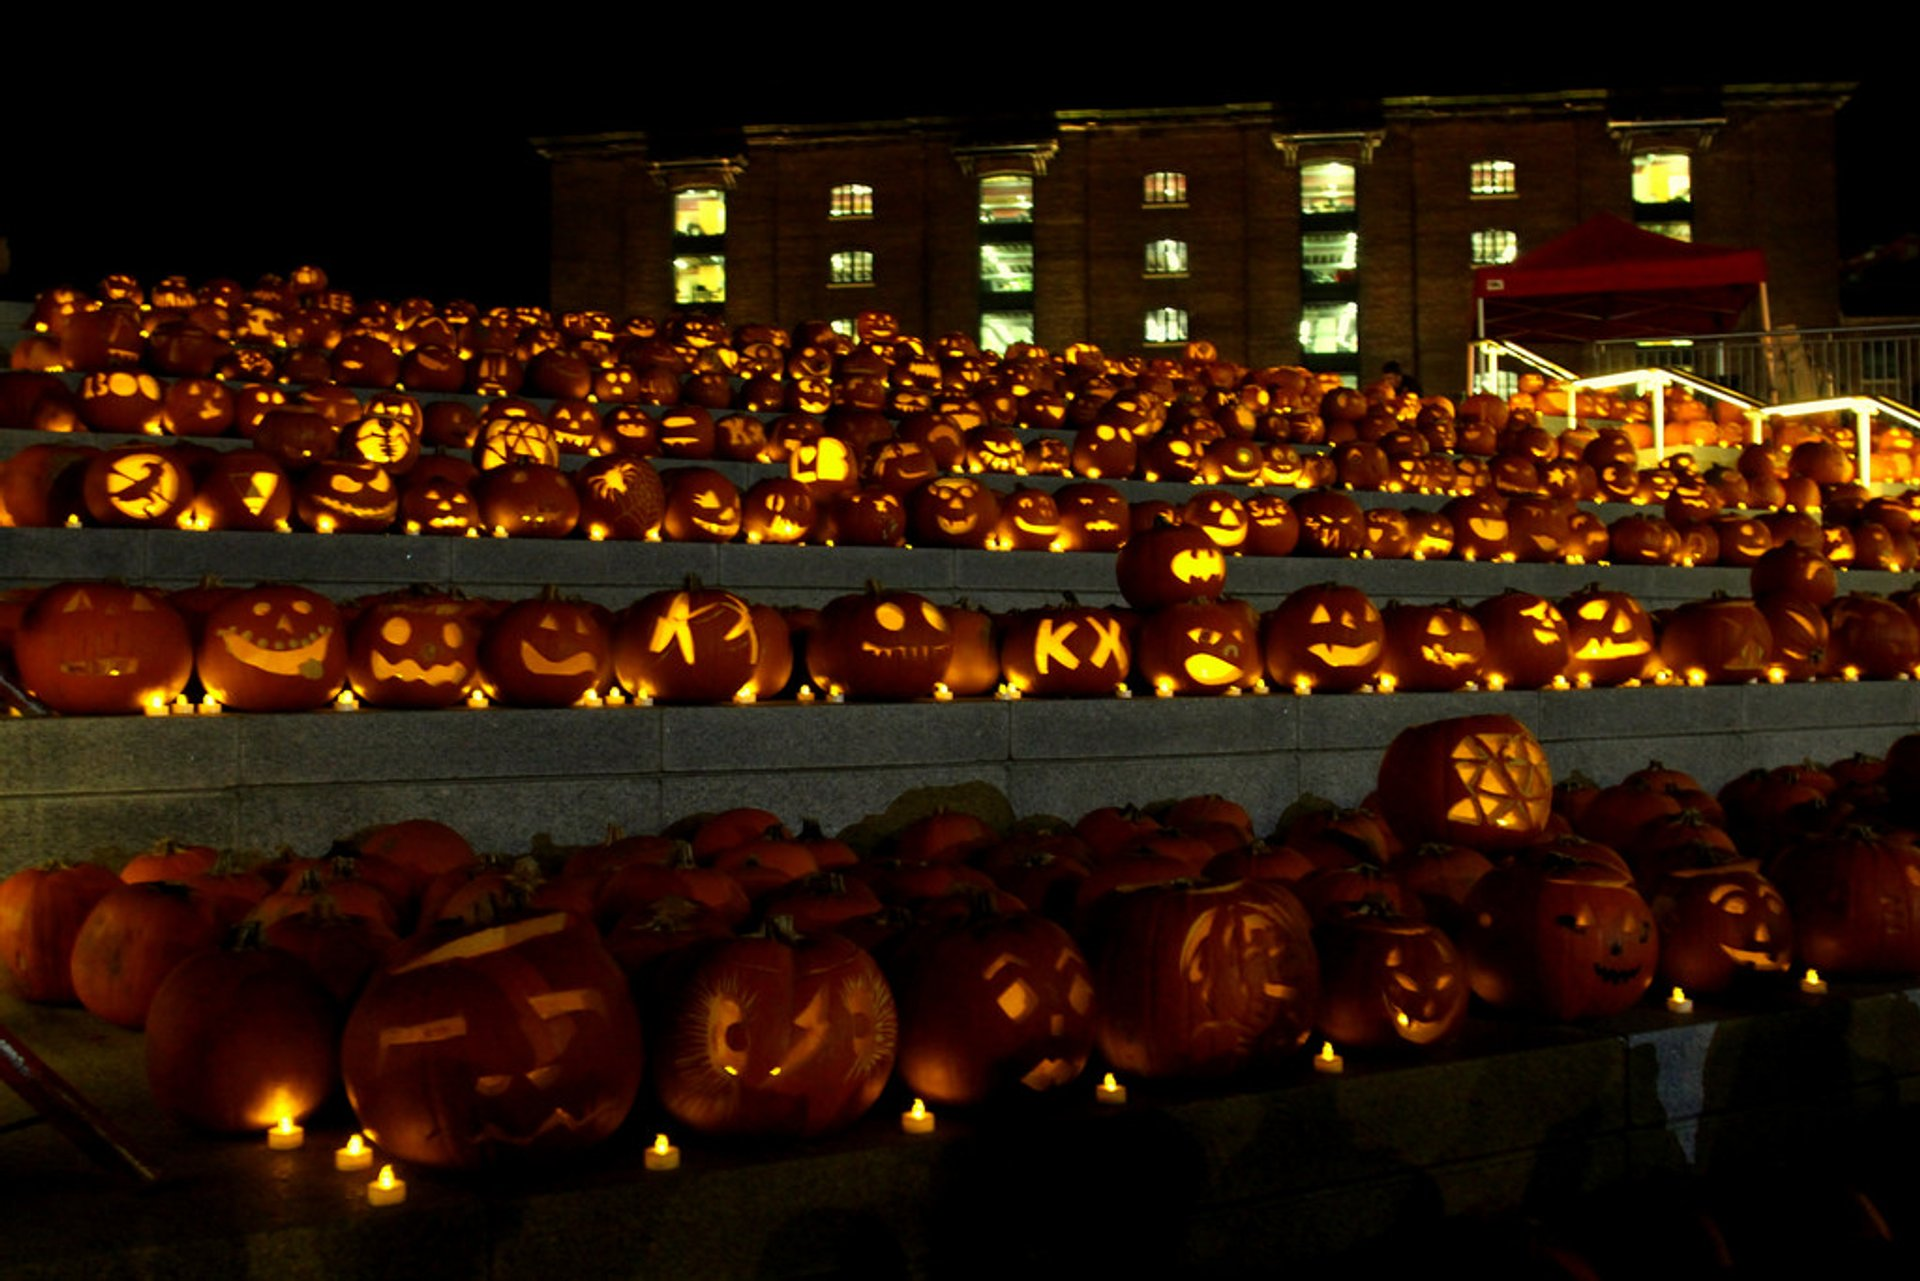 The King's Cross pumpkins by night 2019